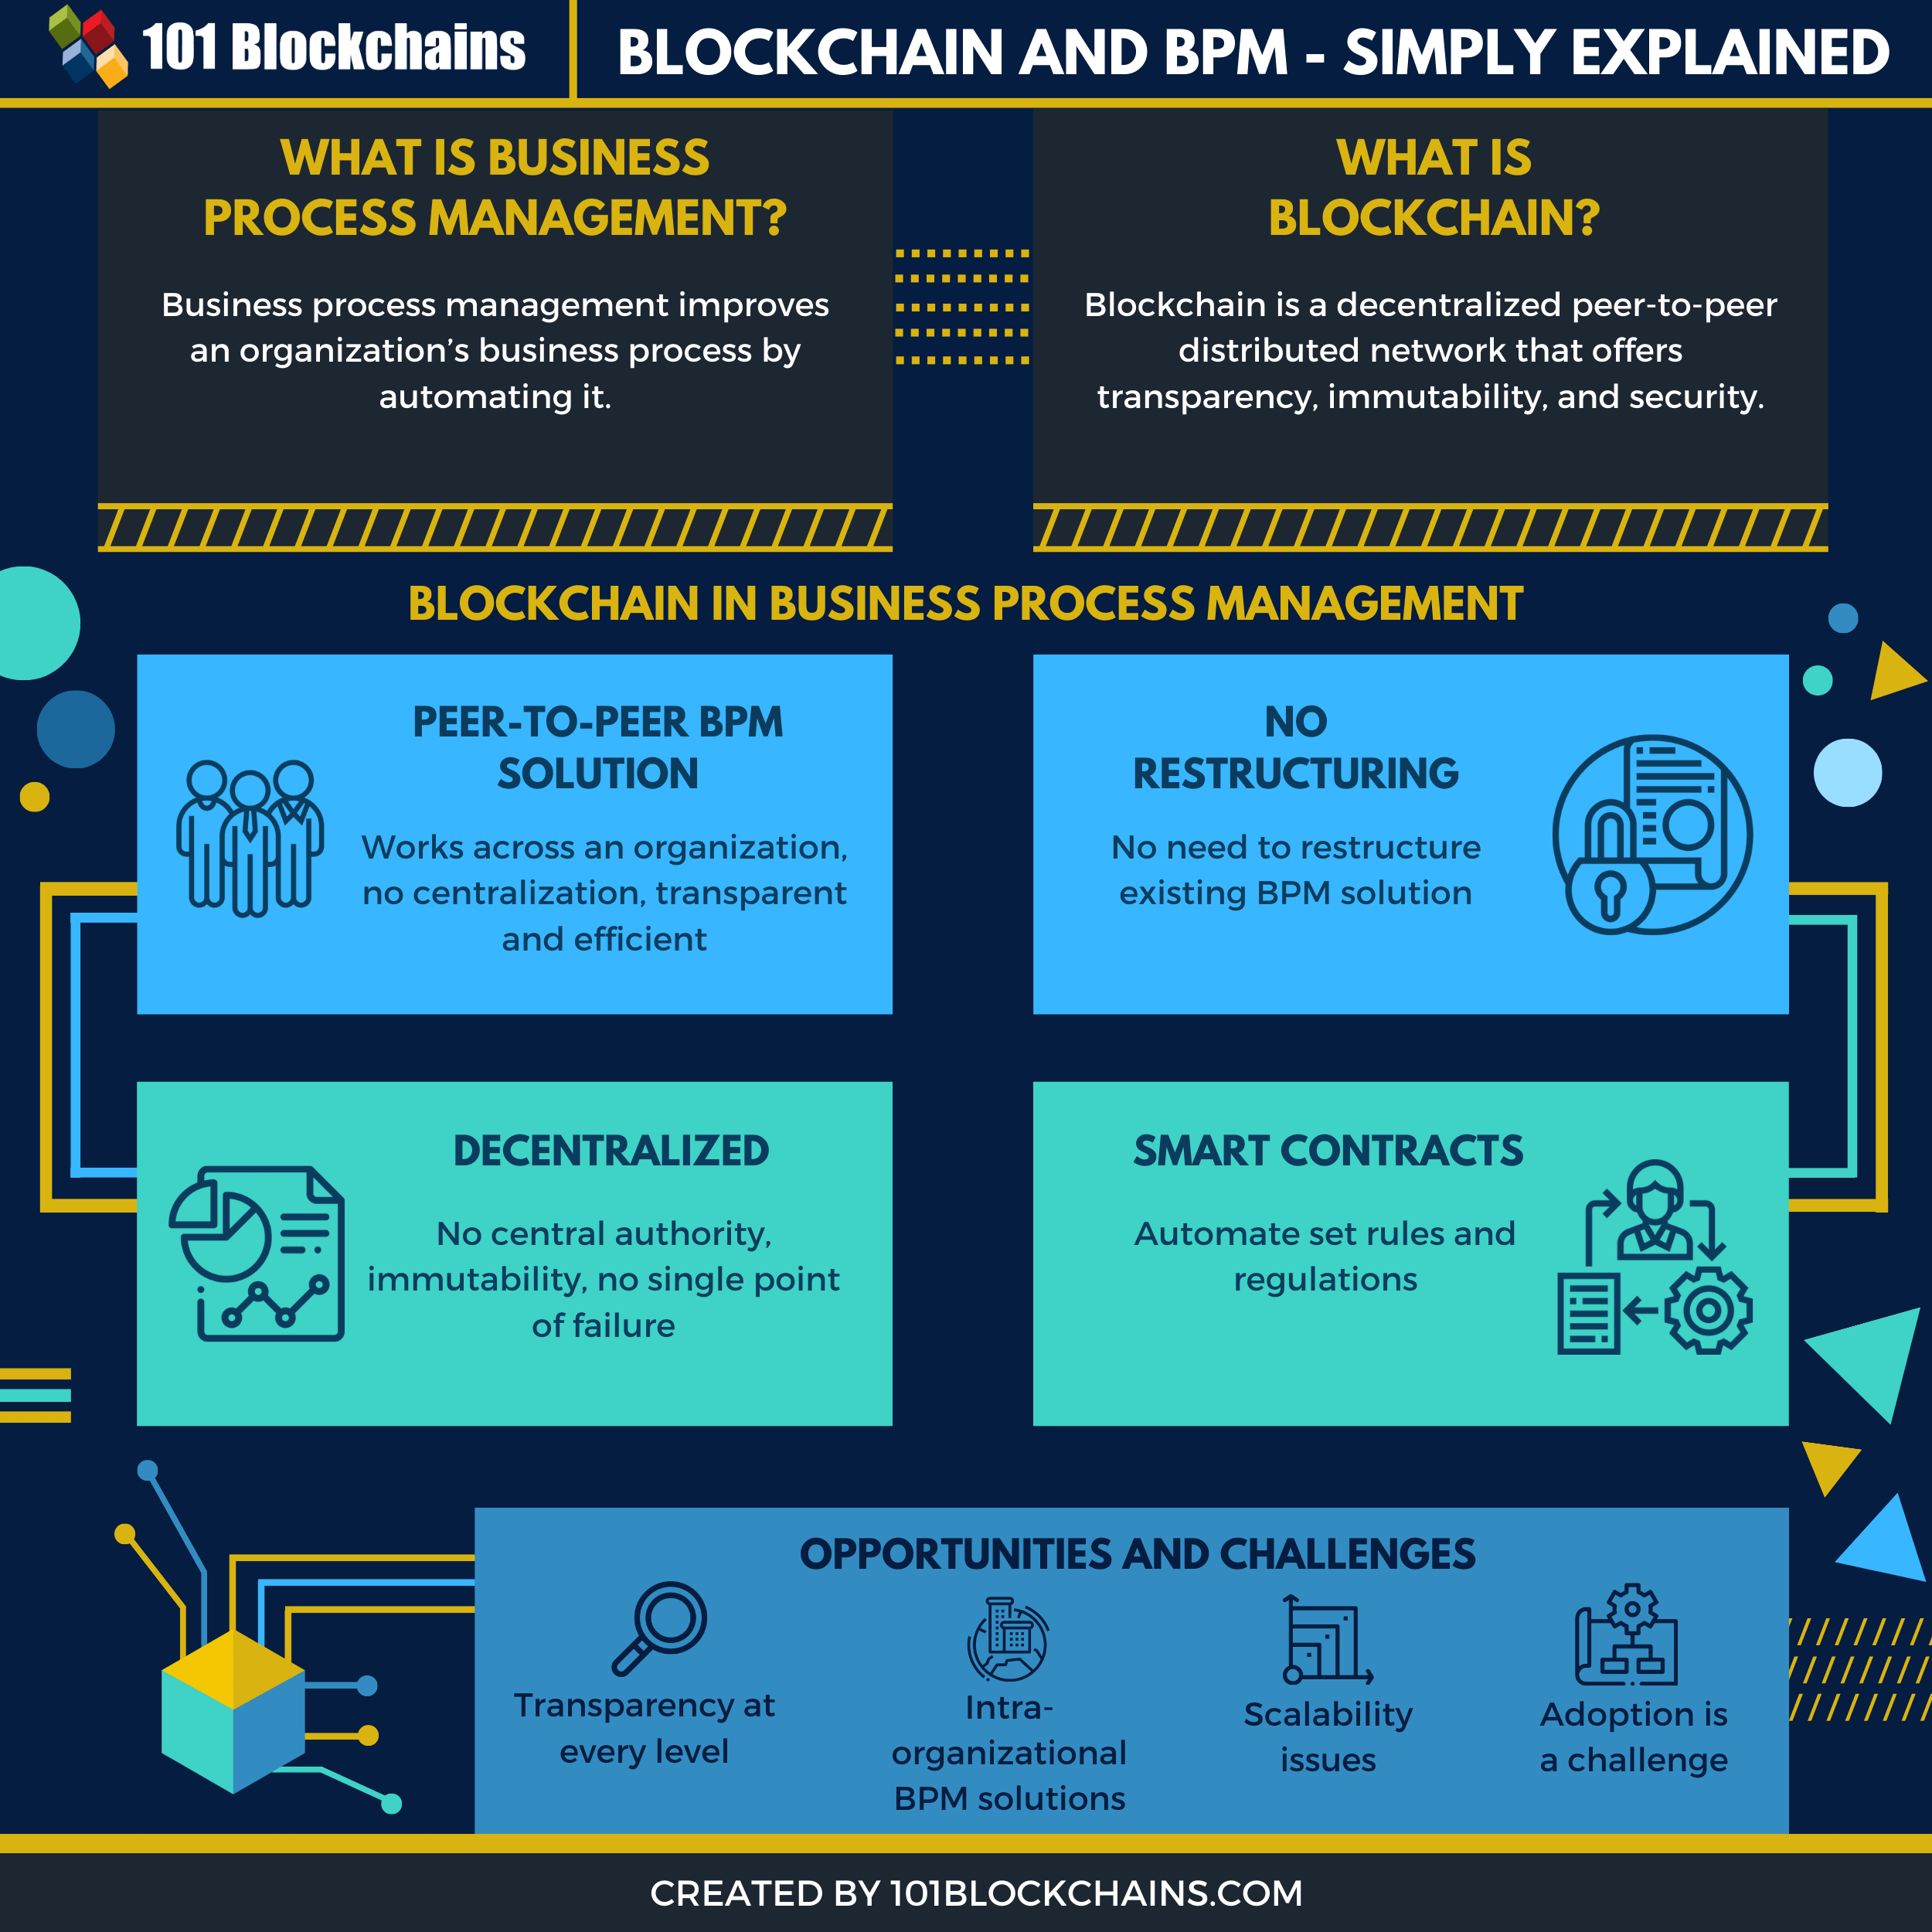 Blockchain and bpm